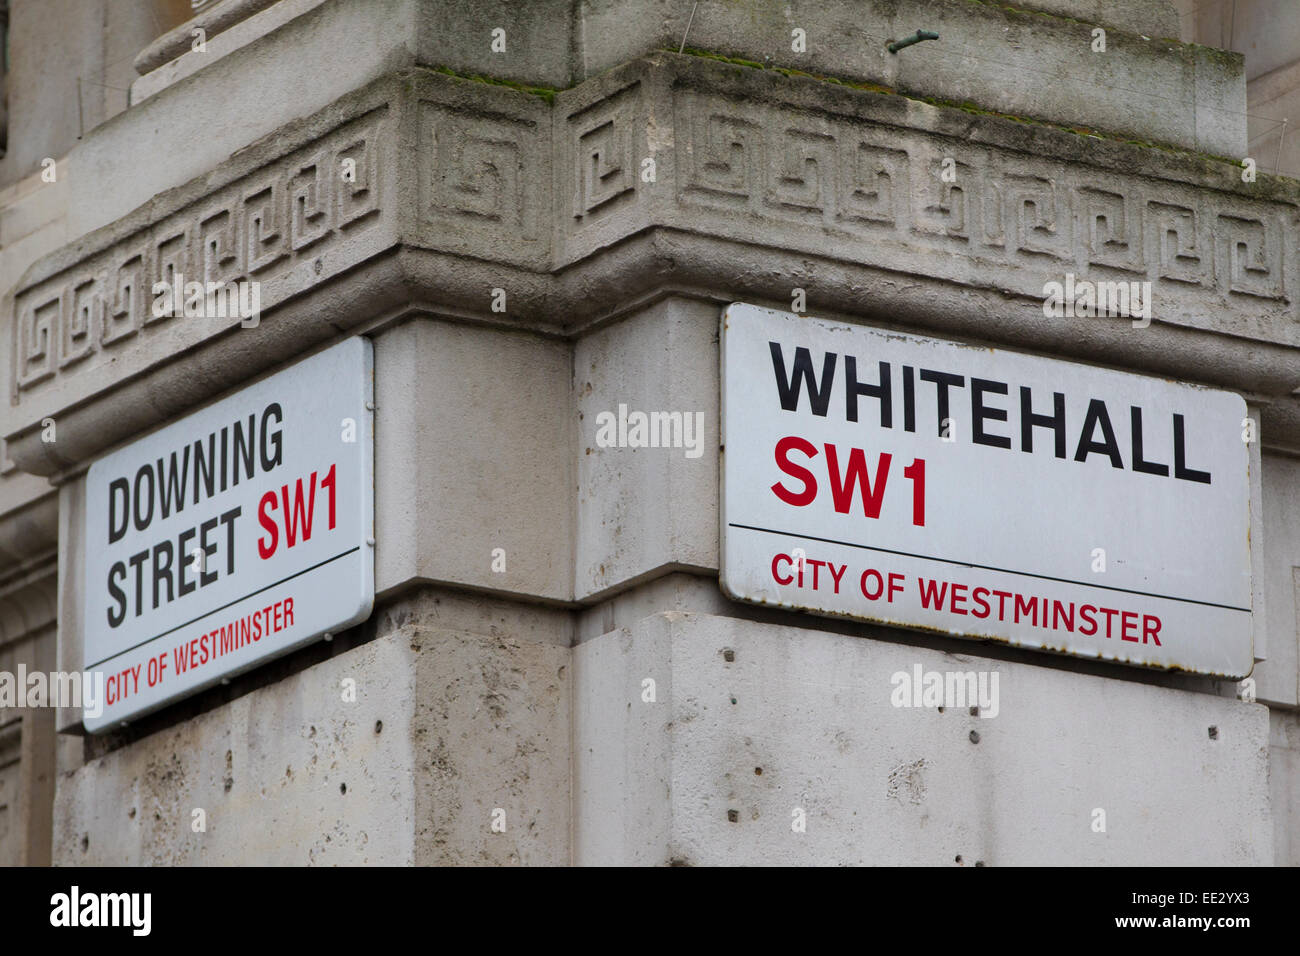 Downing Street and Whitehall signs on adjacent streets in Westminster, Central London, England, UK - Stock Image